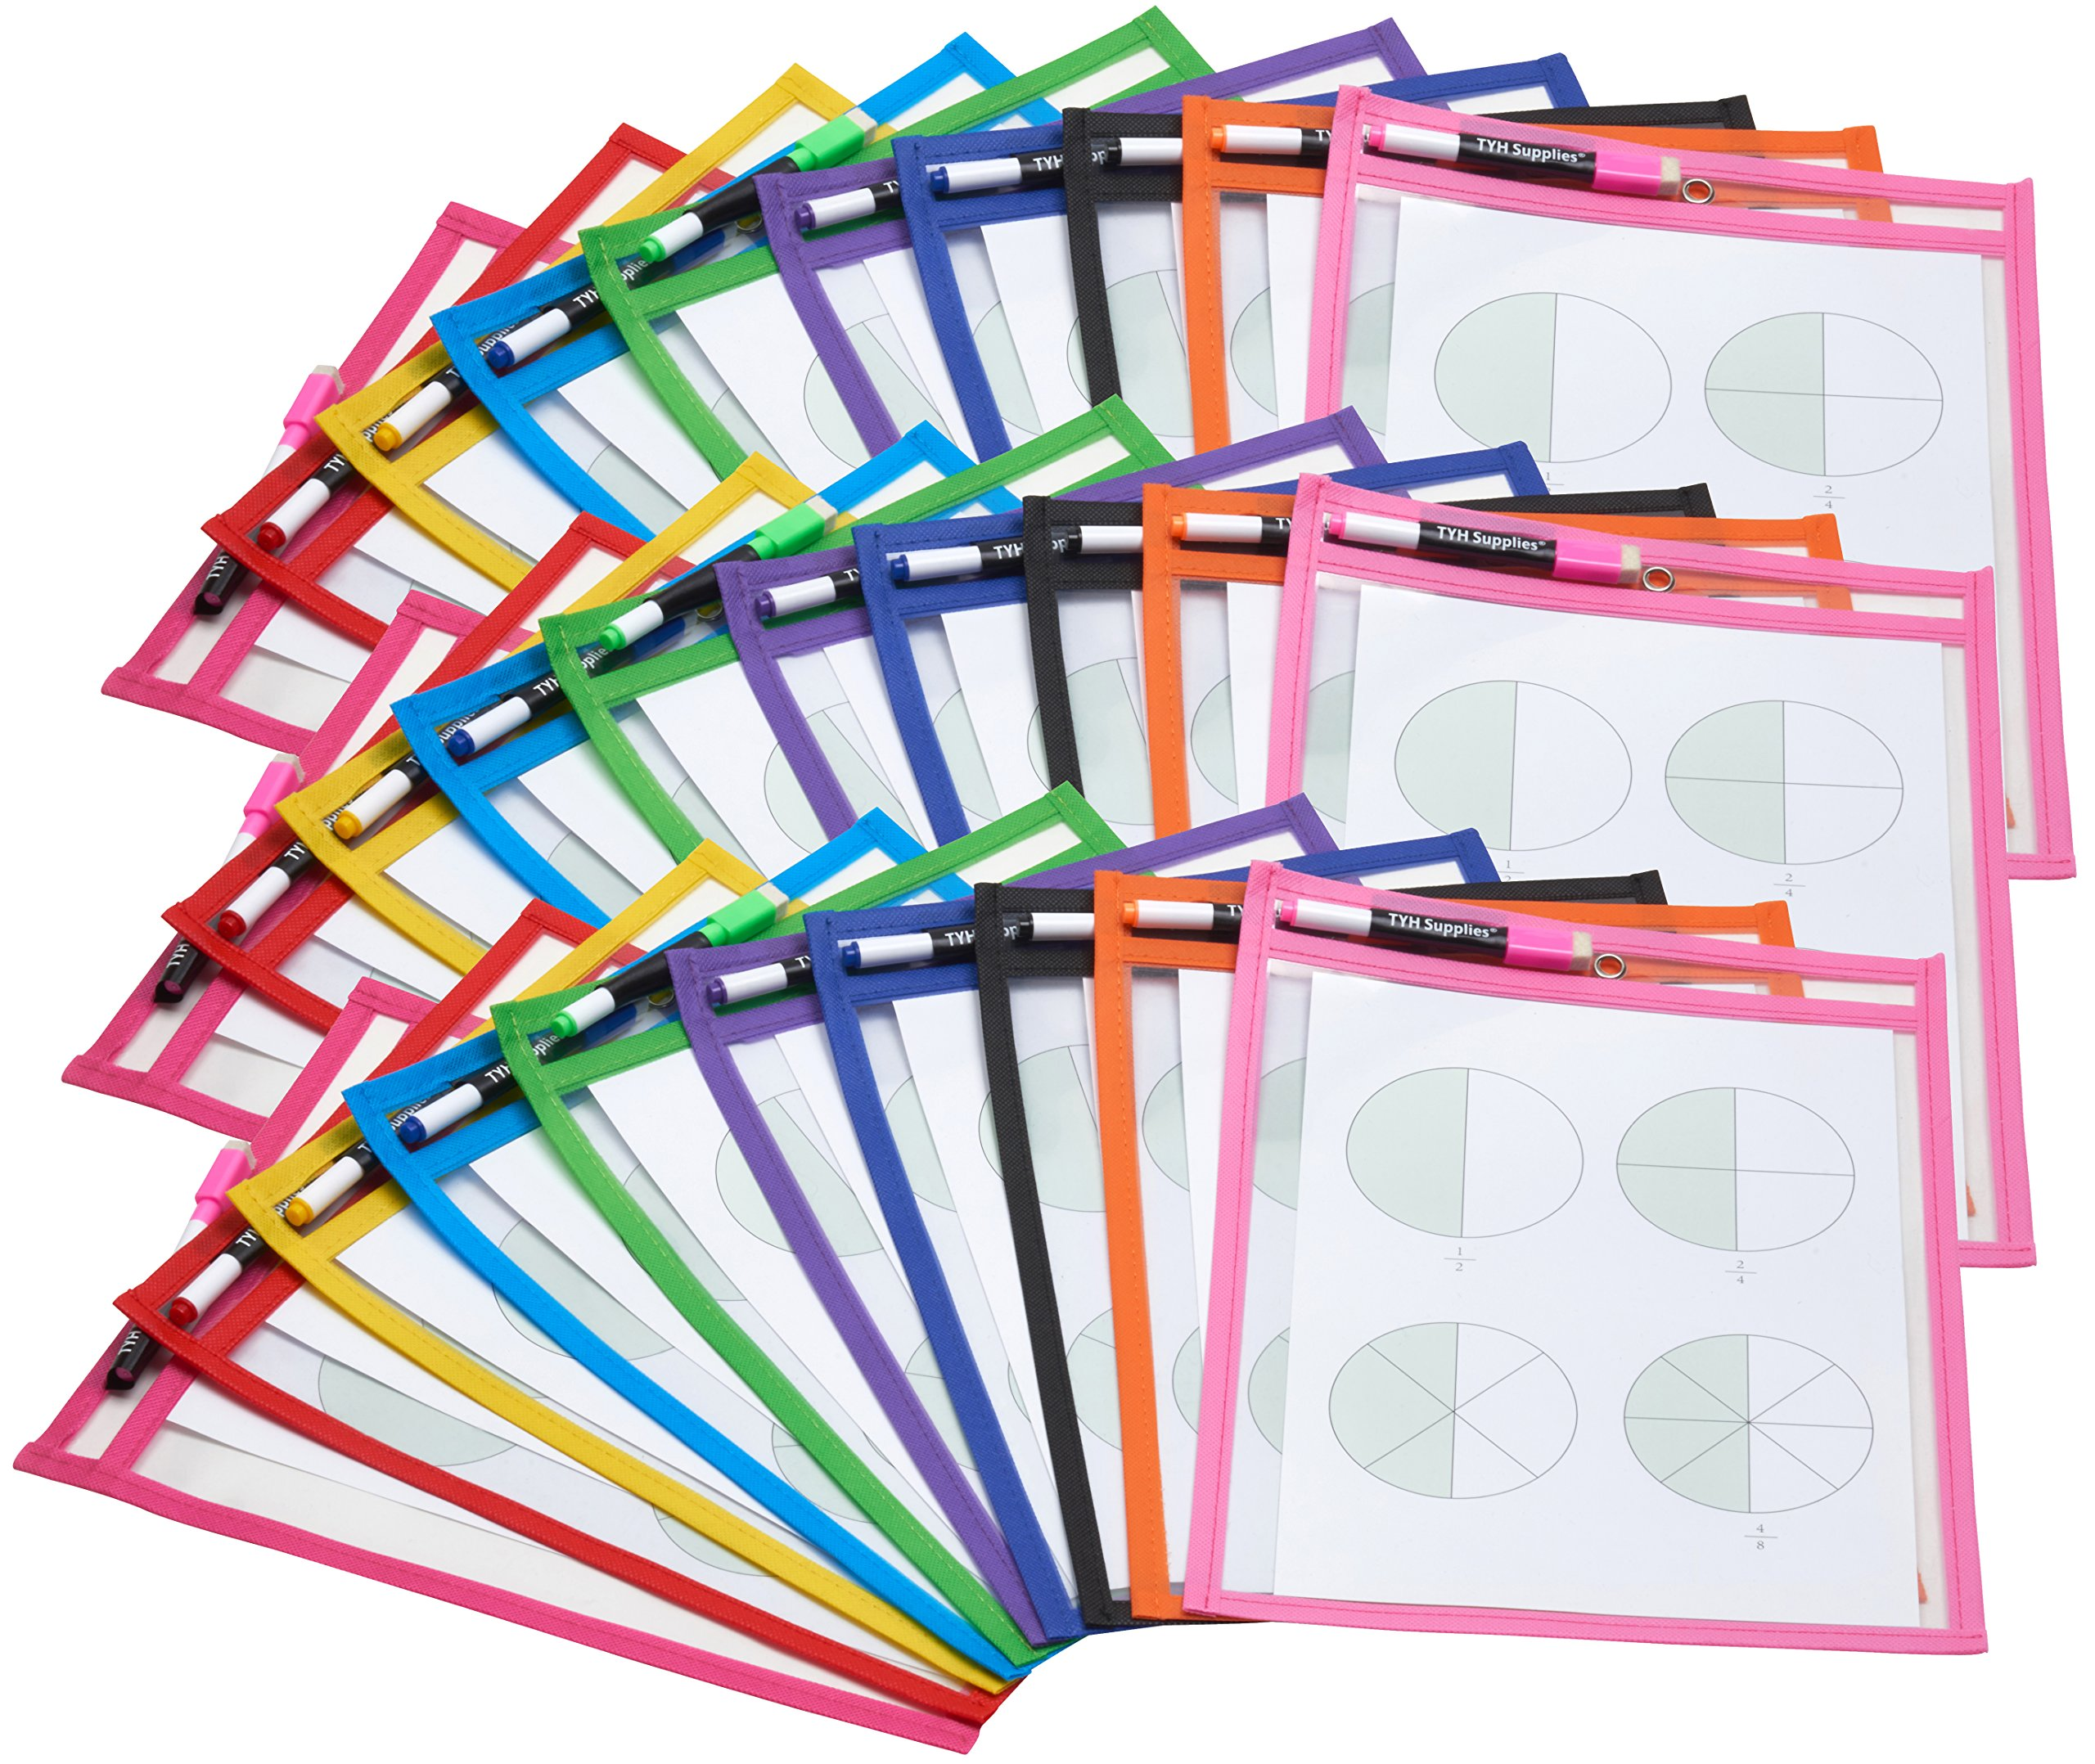 TYH Supplies Set of 30 Reusable Dry Erase Pockets, 9 x 12 Inches, Assorted Neon Colors